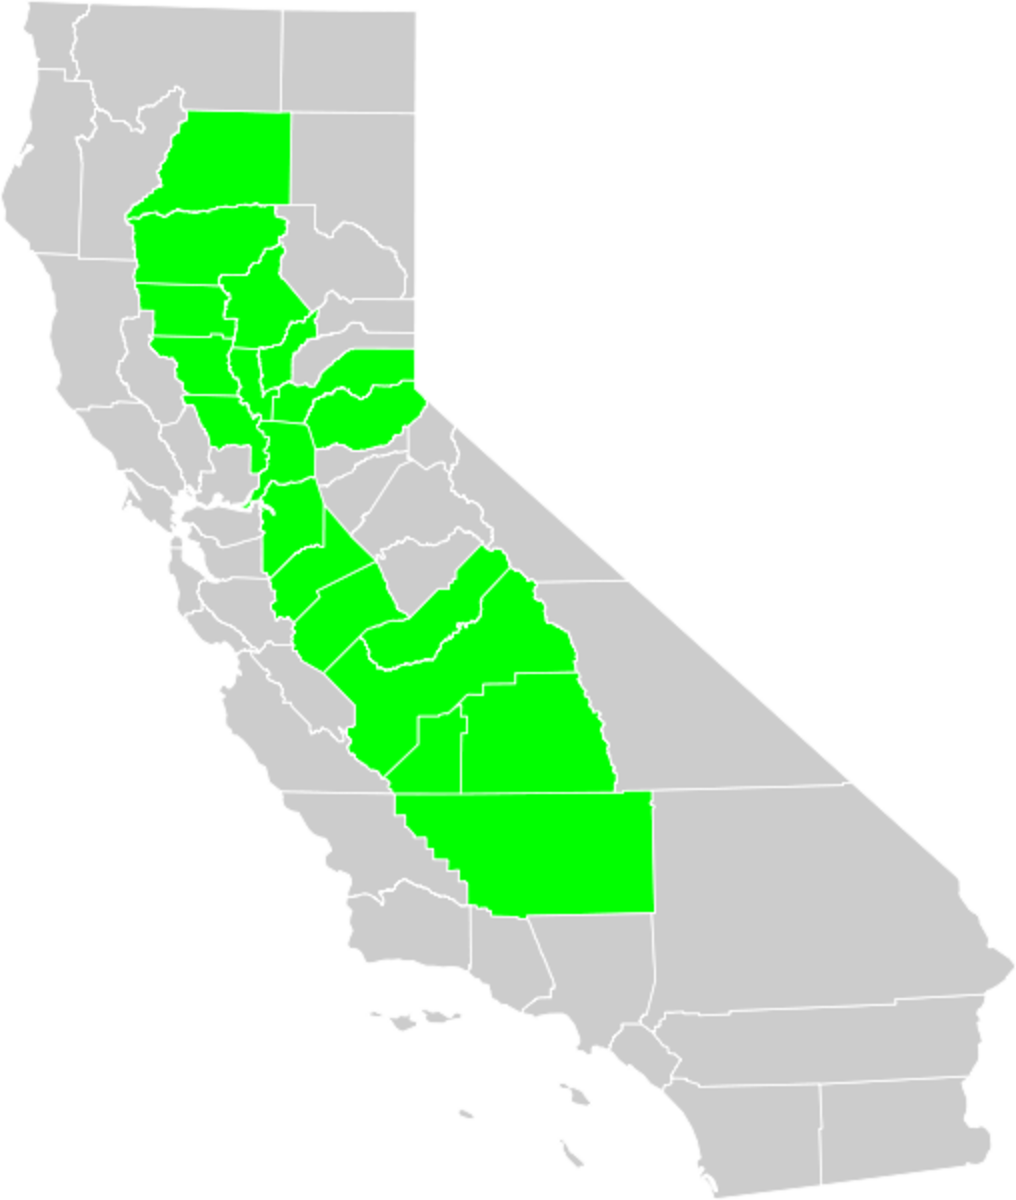 Central Valley of California (shown in green on California outline.)